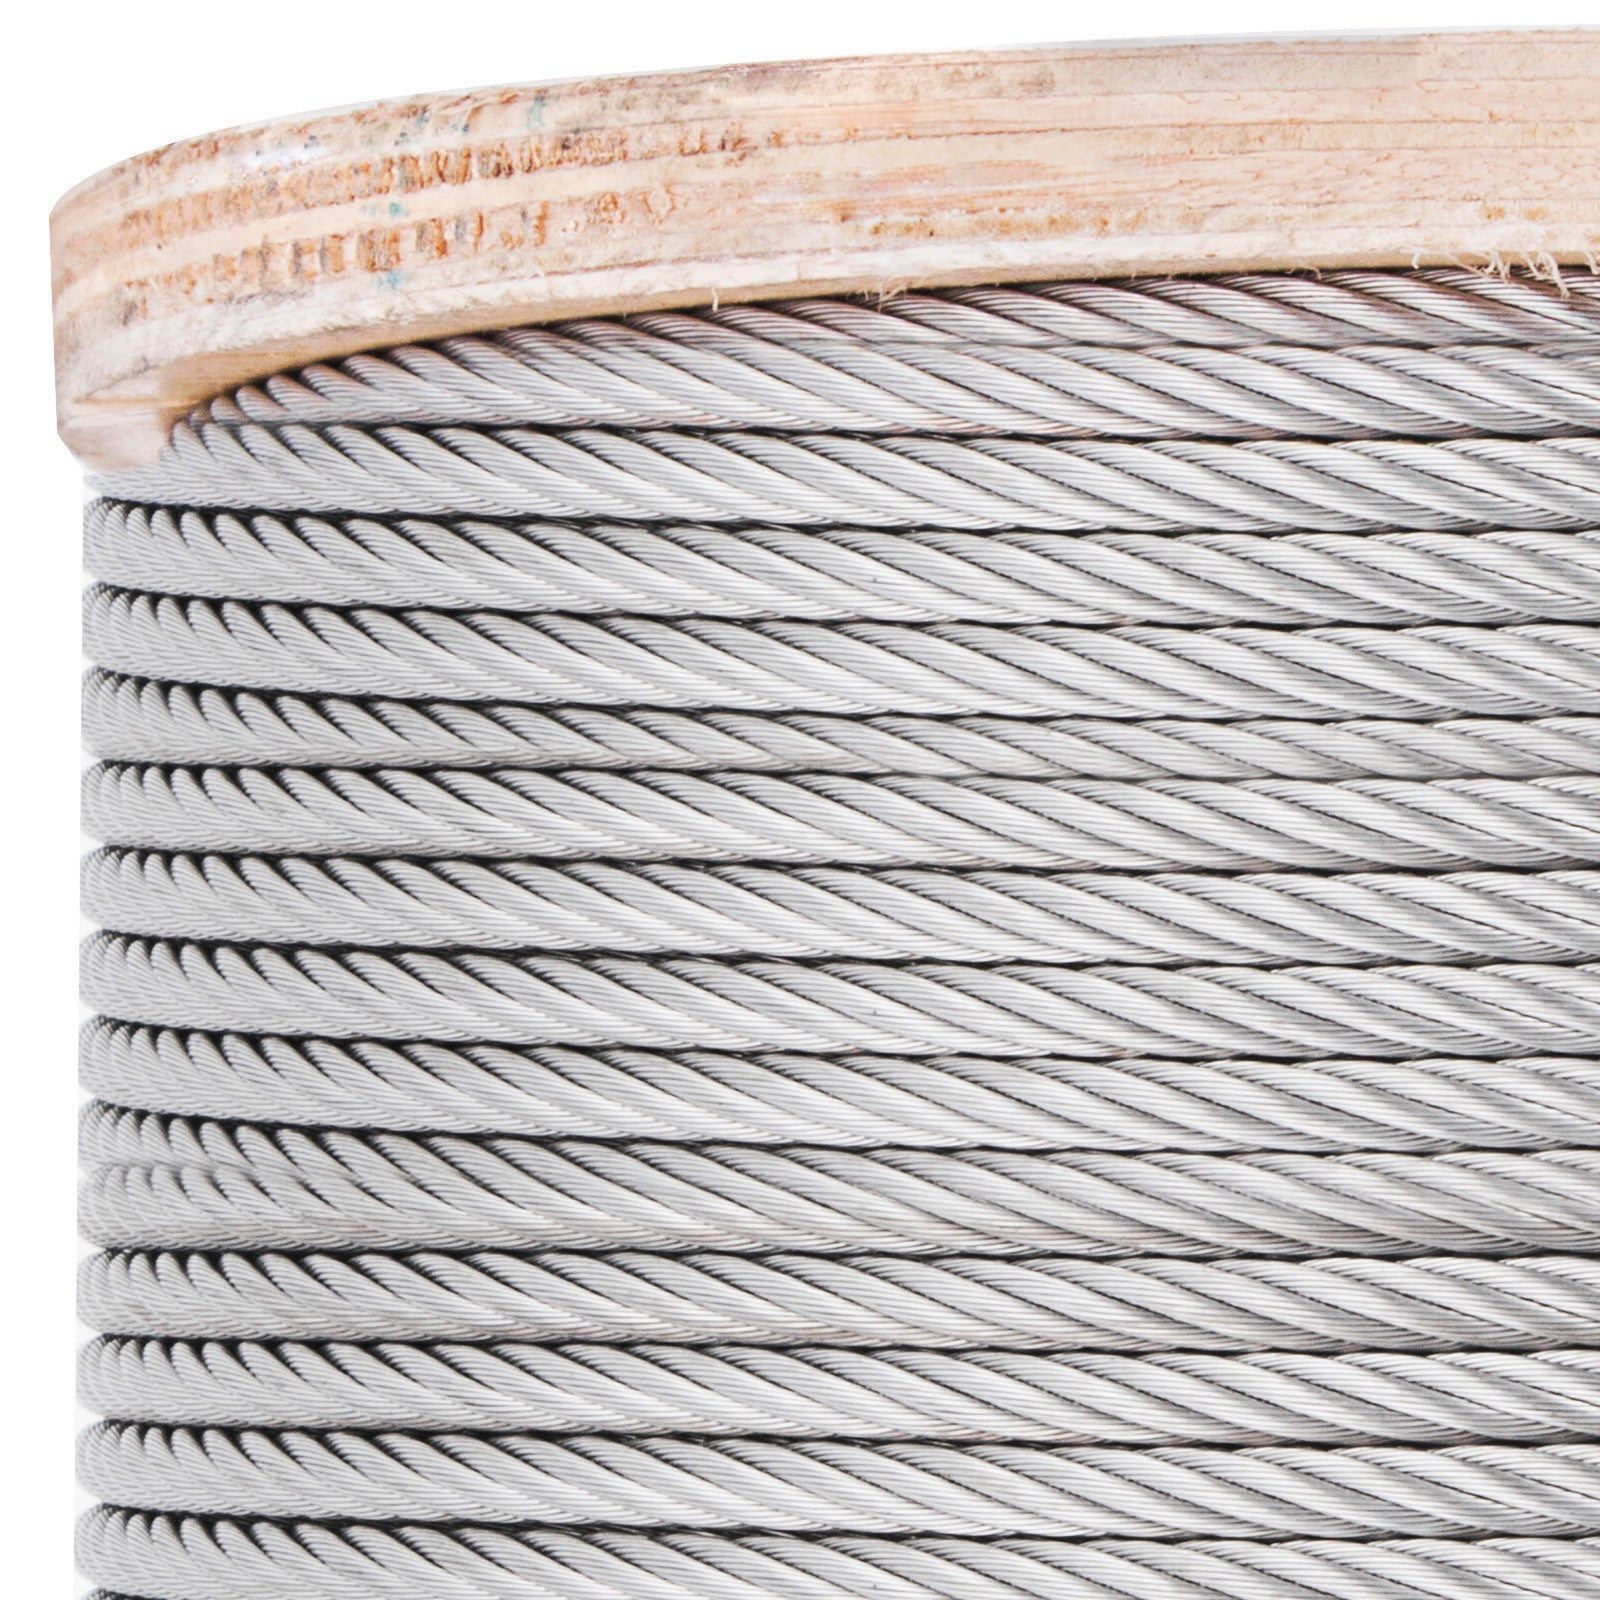 T304 Stainless Steel Cable Wire Rope,3/16,7x19,200ft Strand Machinery Mining